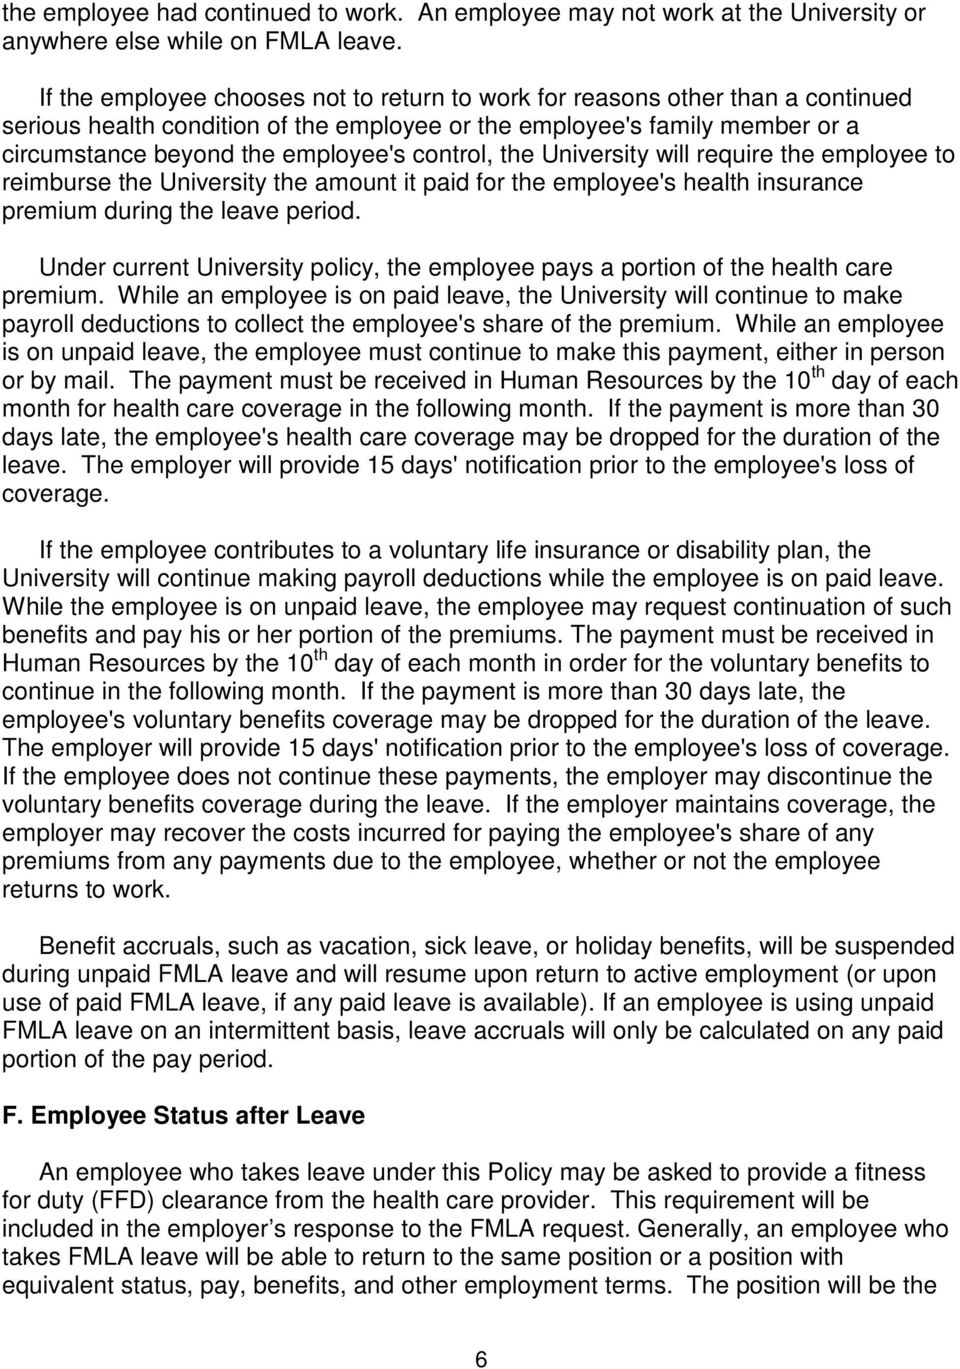 control, the University will require the employee to reimburse the University the amount it paid for the employee's health insurance premium during the leave period.